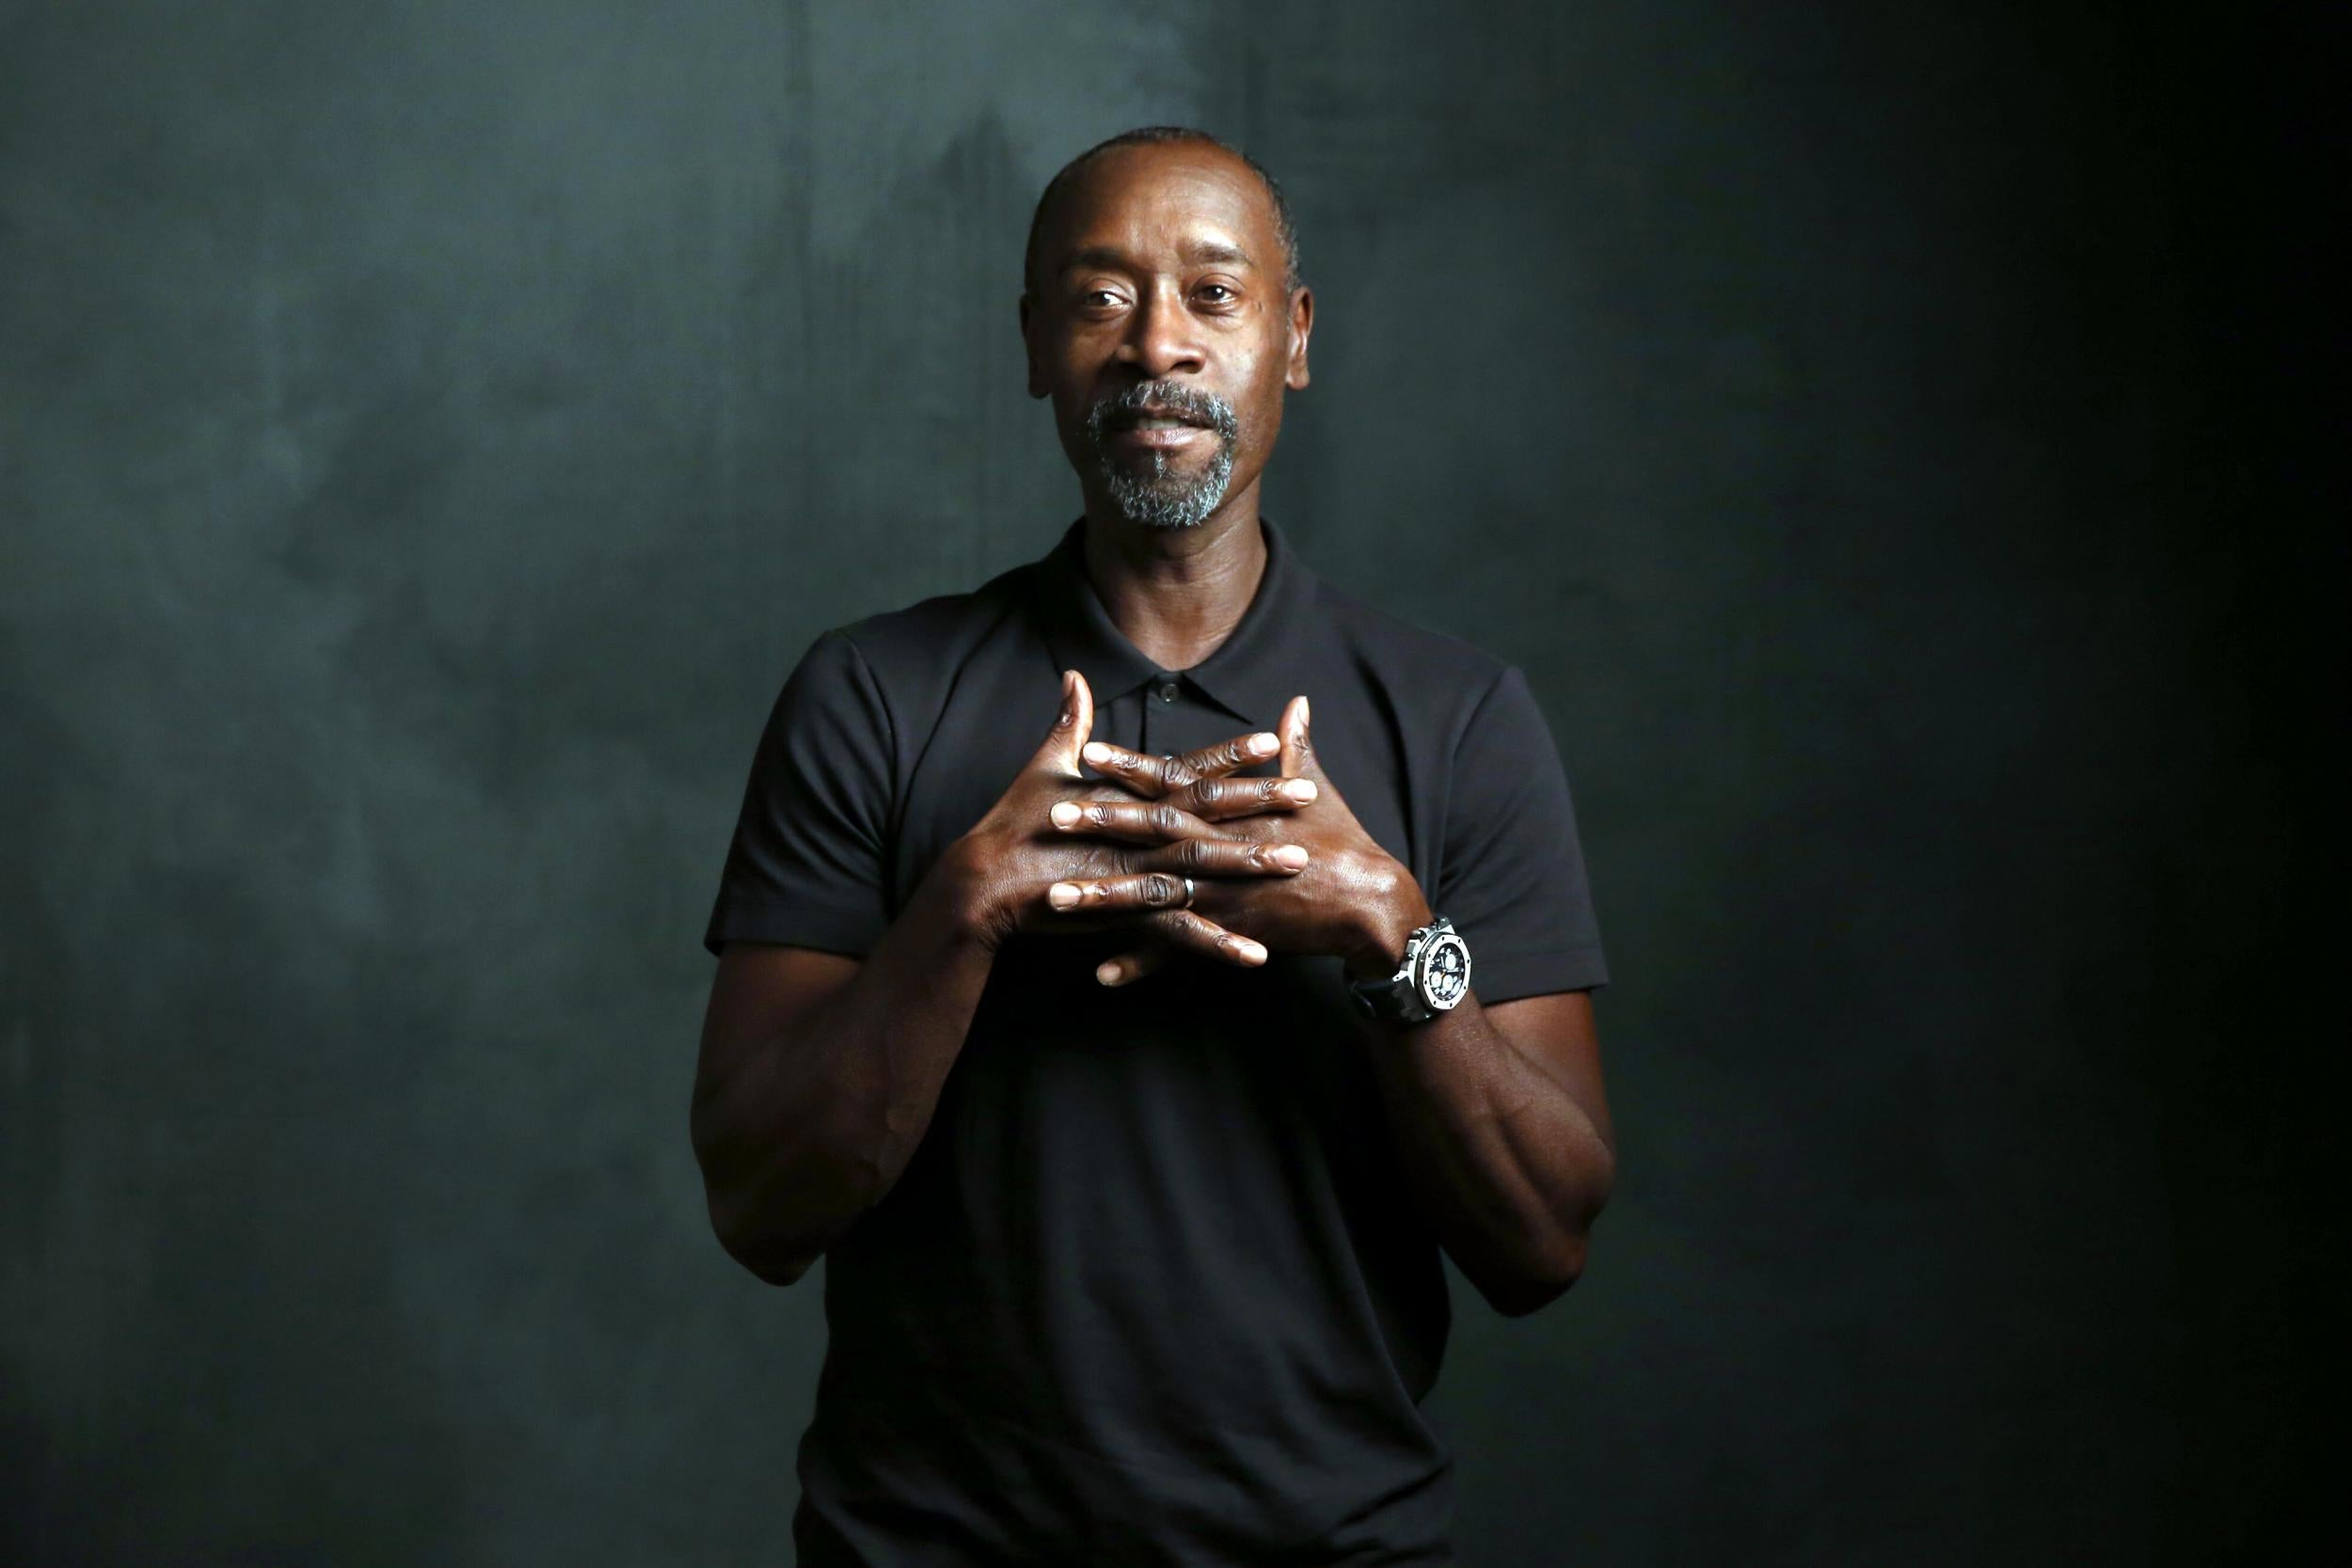 Don Cheadle accuses Donald Trump of extraordinary 'racist, misogynistic' golf course slur